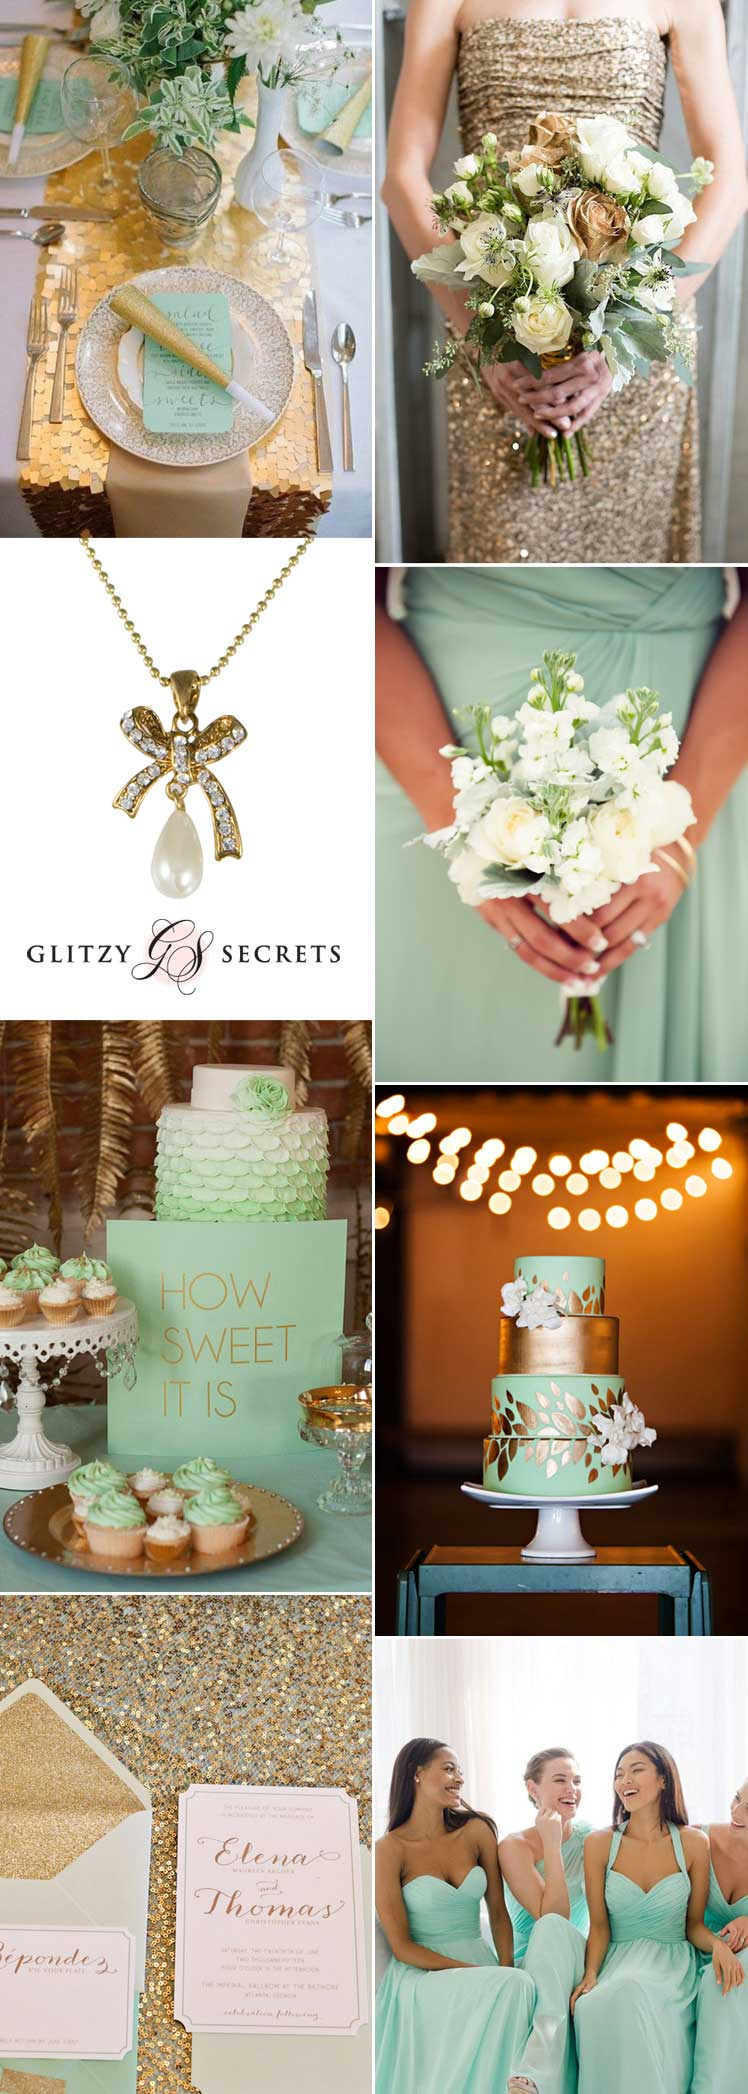 Gold and mint green theme inspiration for your wedding